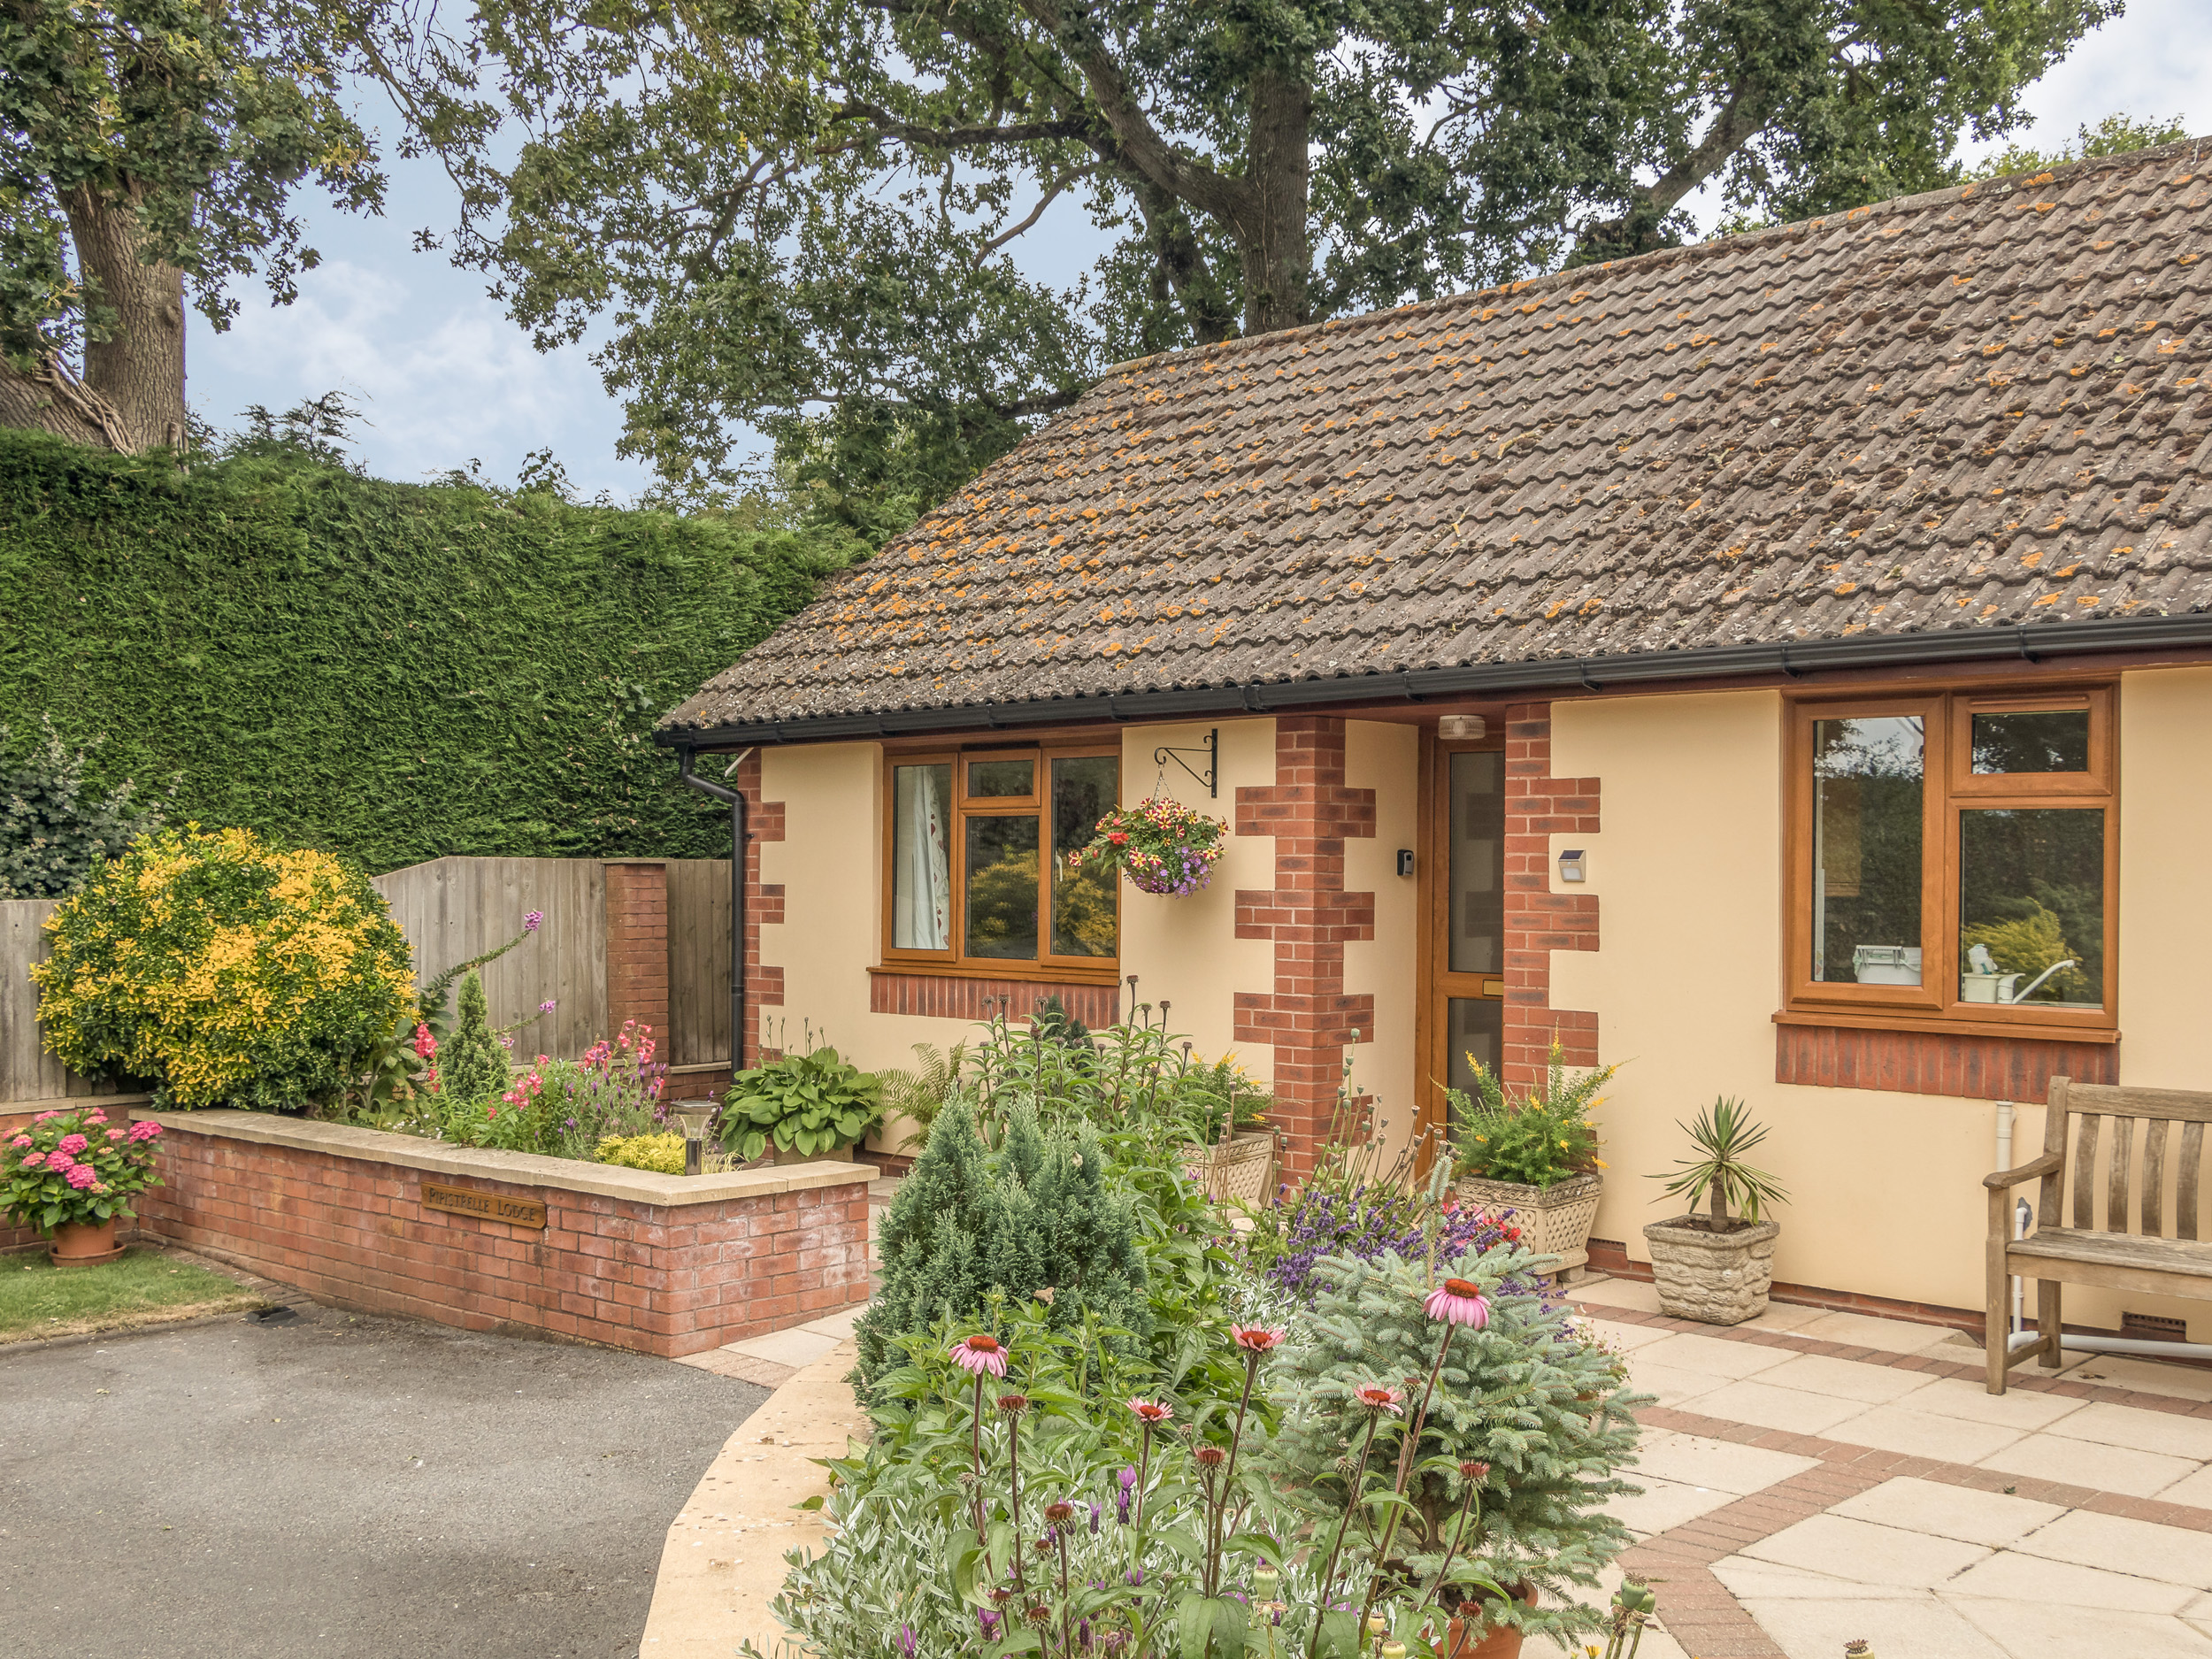 1 bedroom Cottage for rent in Cullompton